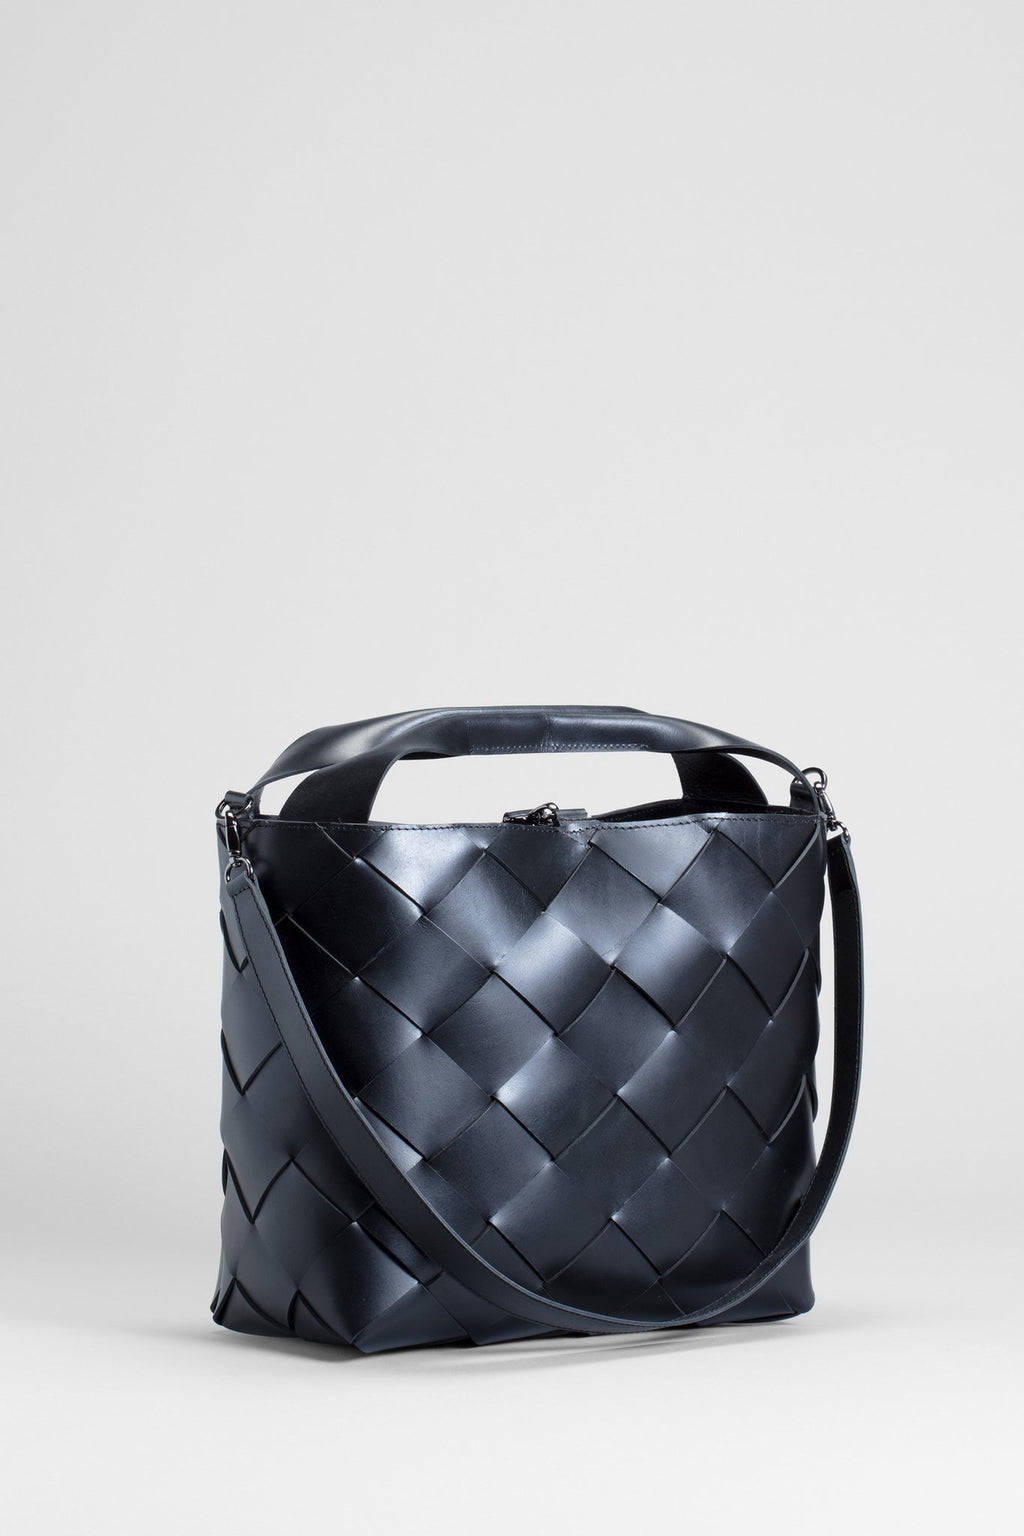 ELK The Label - Tejer Bag online at PAYA boutique